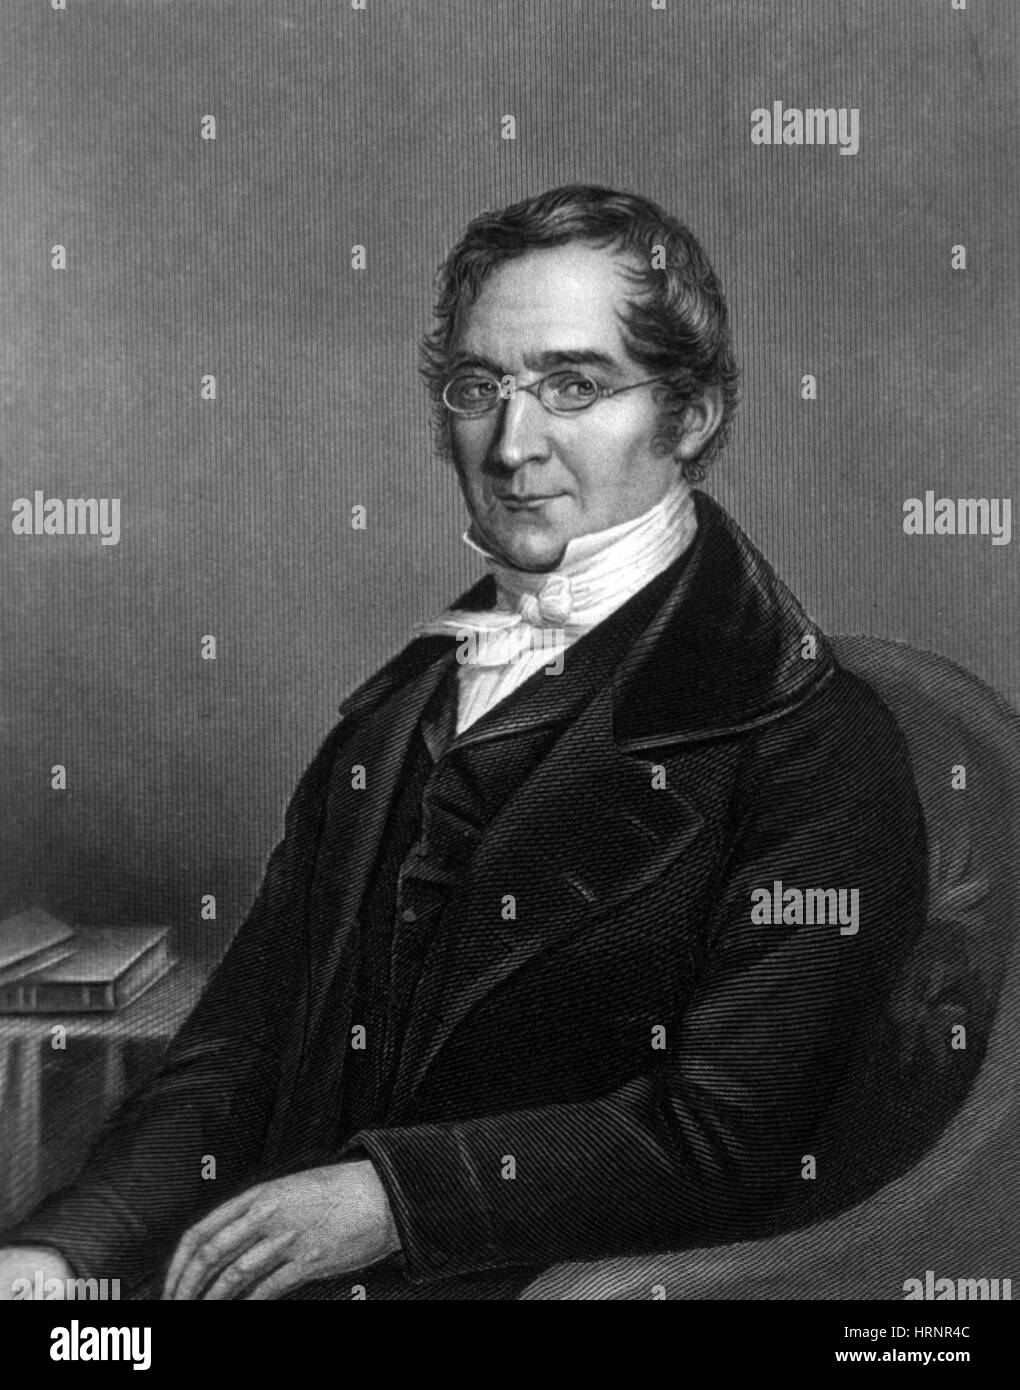 Joseph Gay-Lussac, French Chemist and Physicist - Stock Image